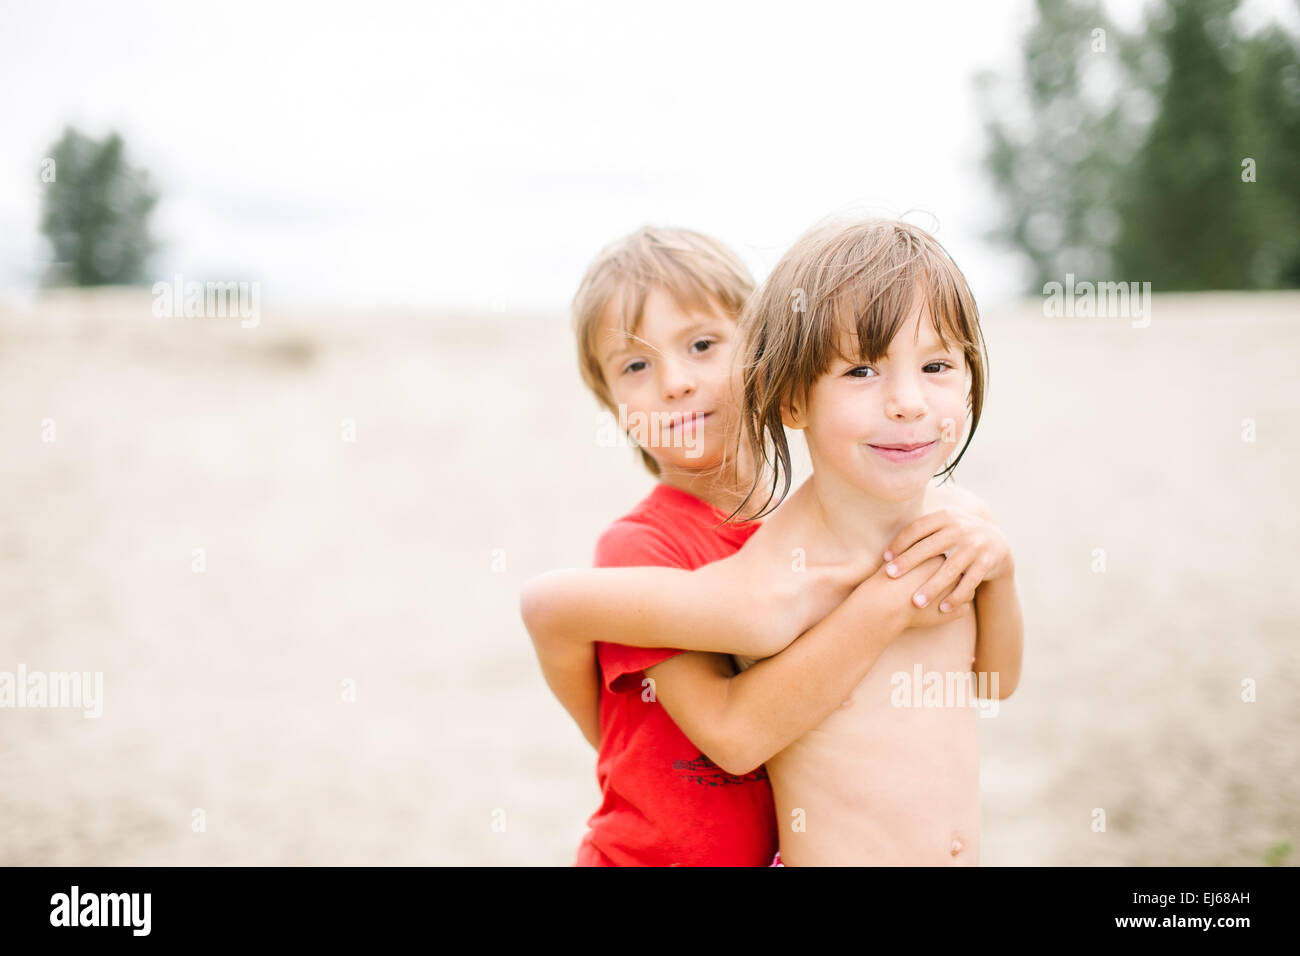 185783fd70ce88 Cute happy fraternal twins enjoying their time at the beach. Brother and  sister hugging.